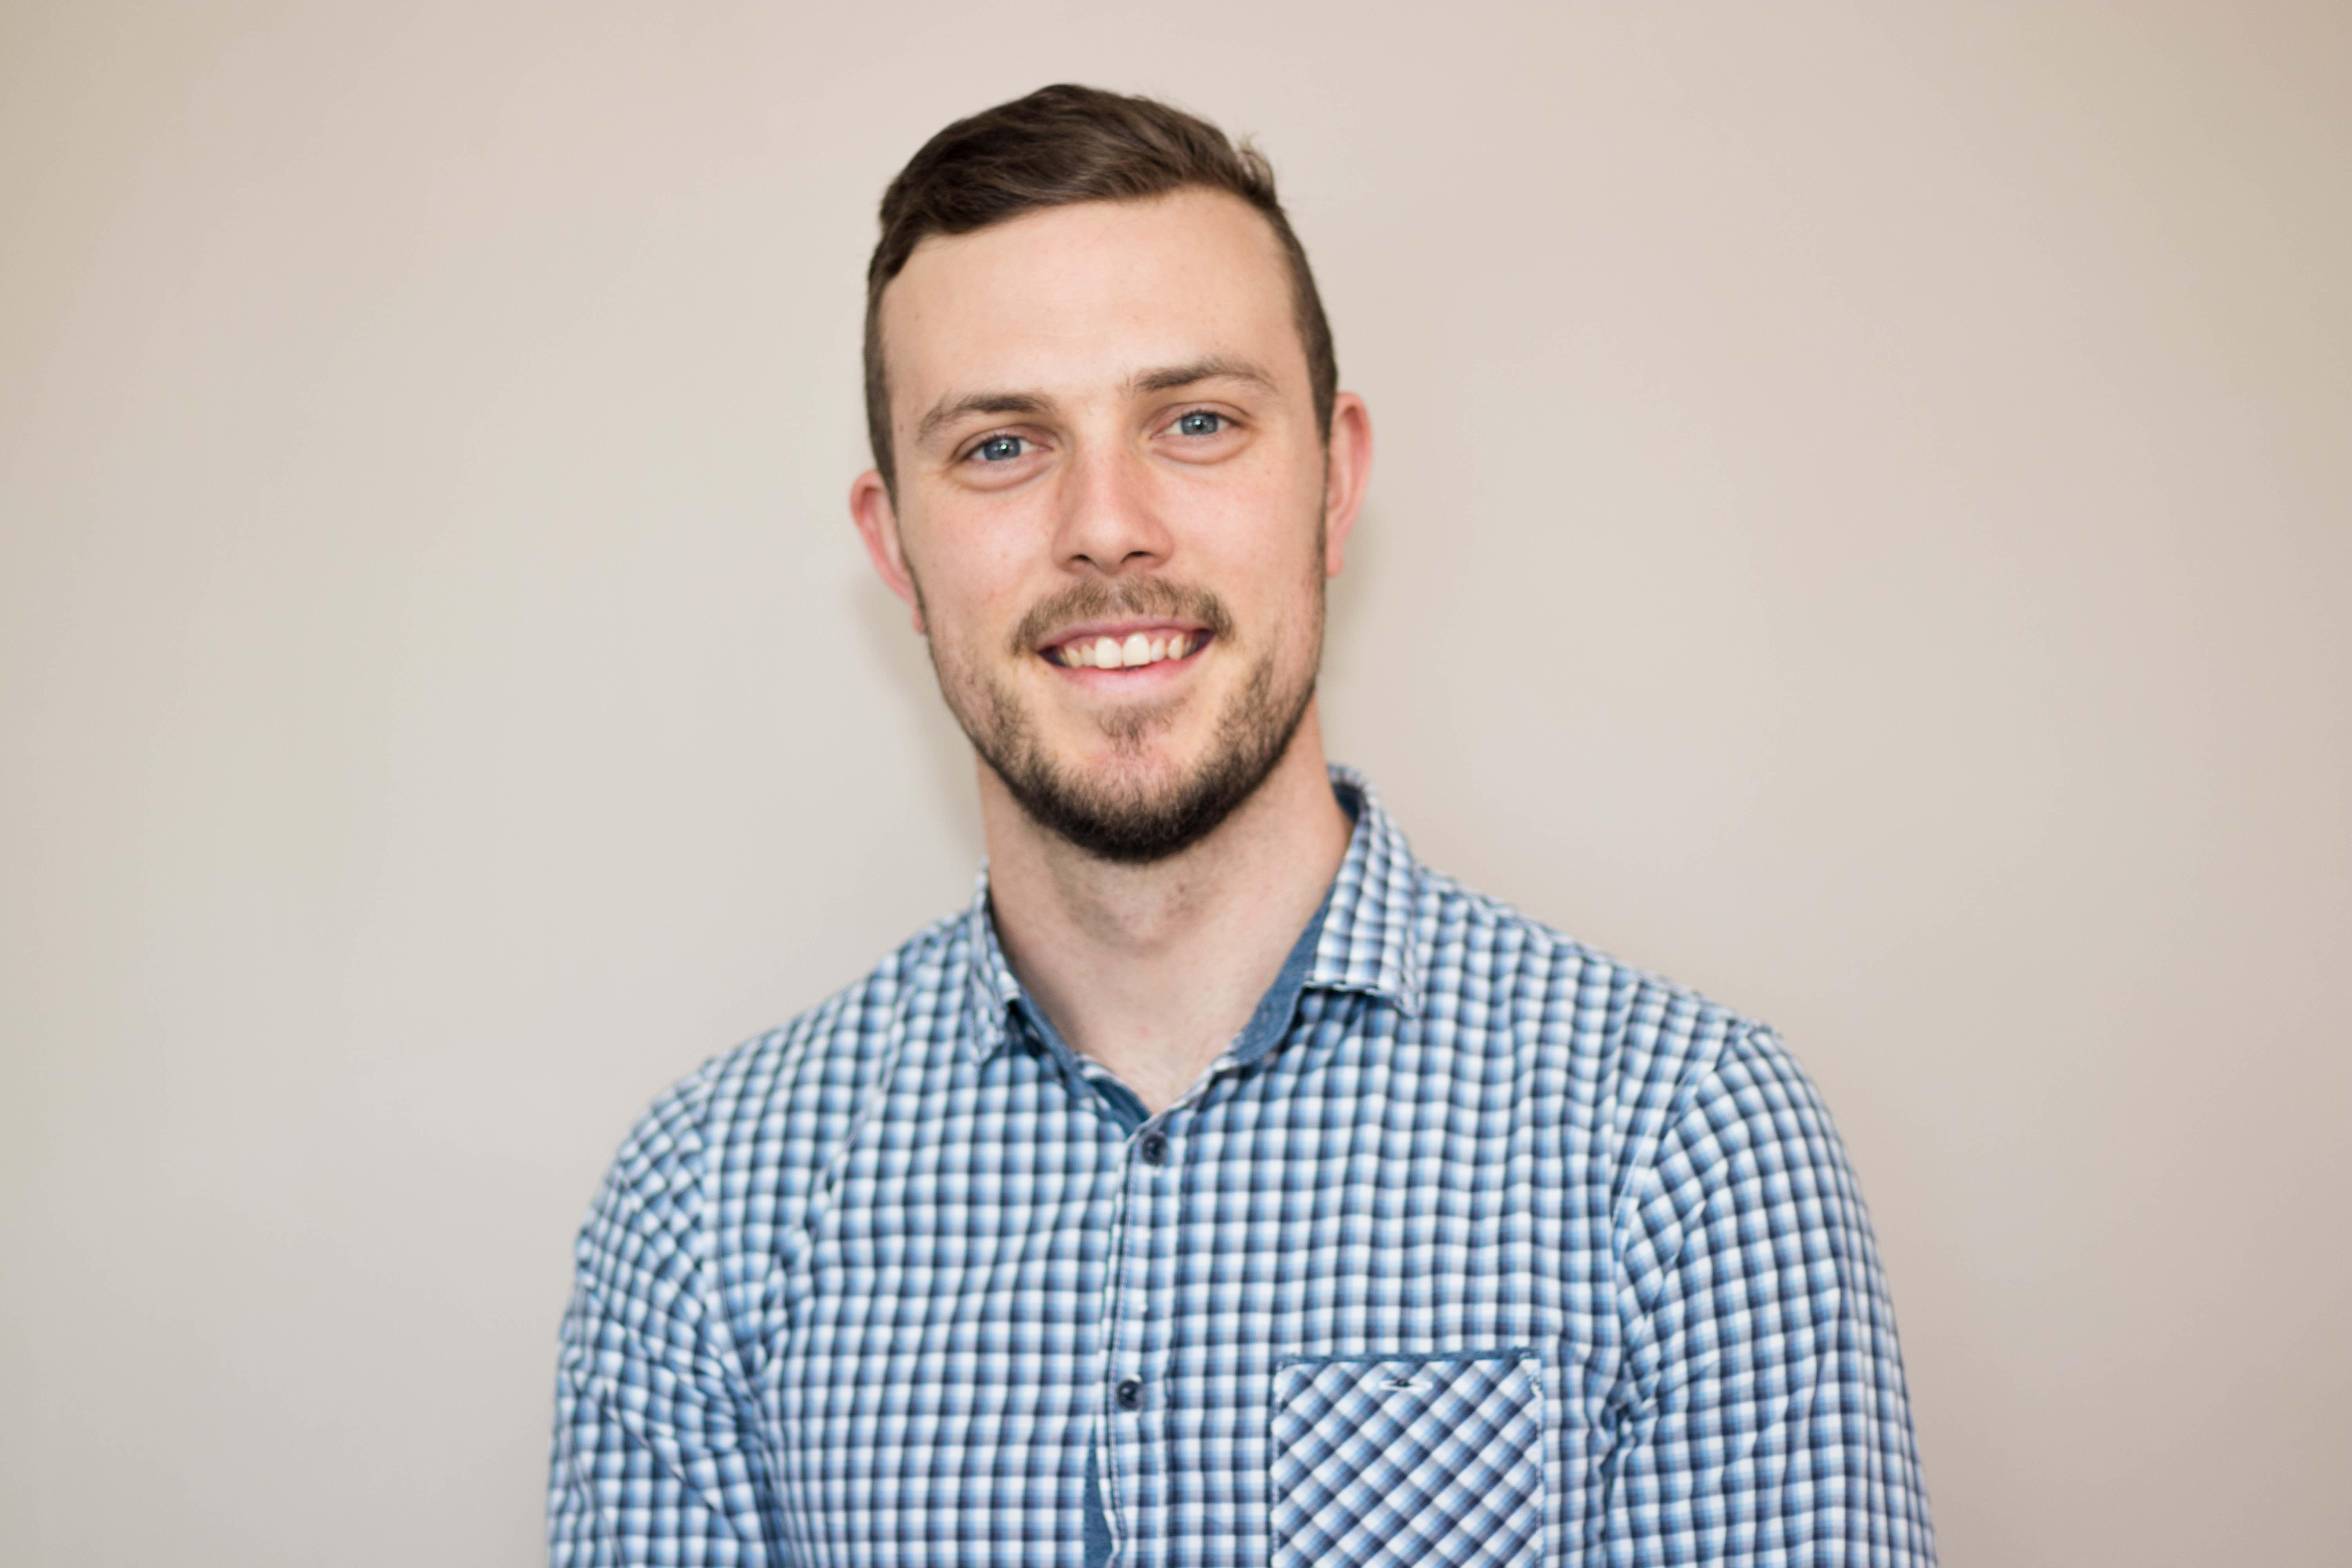 A Vegan Chat With dietitian Jacob McGinness